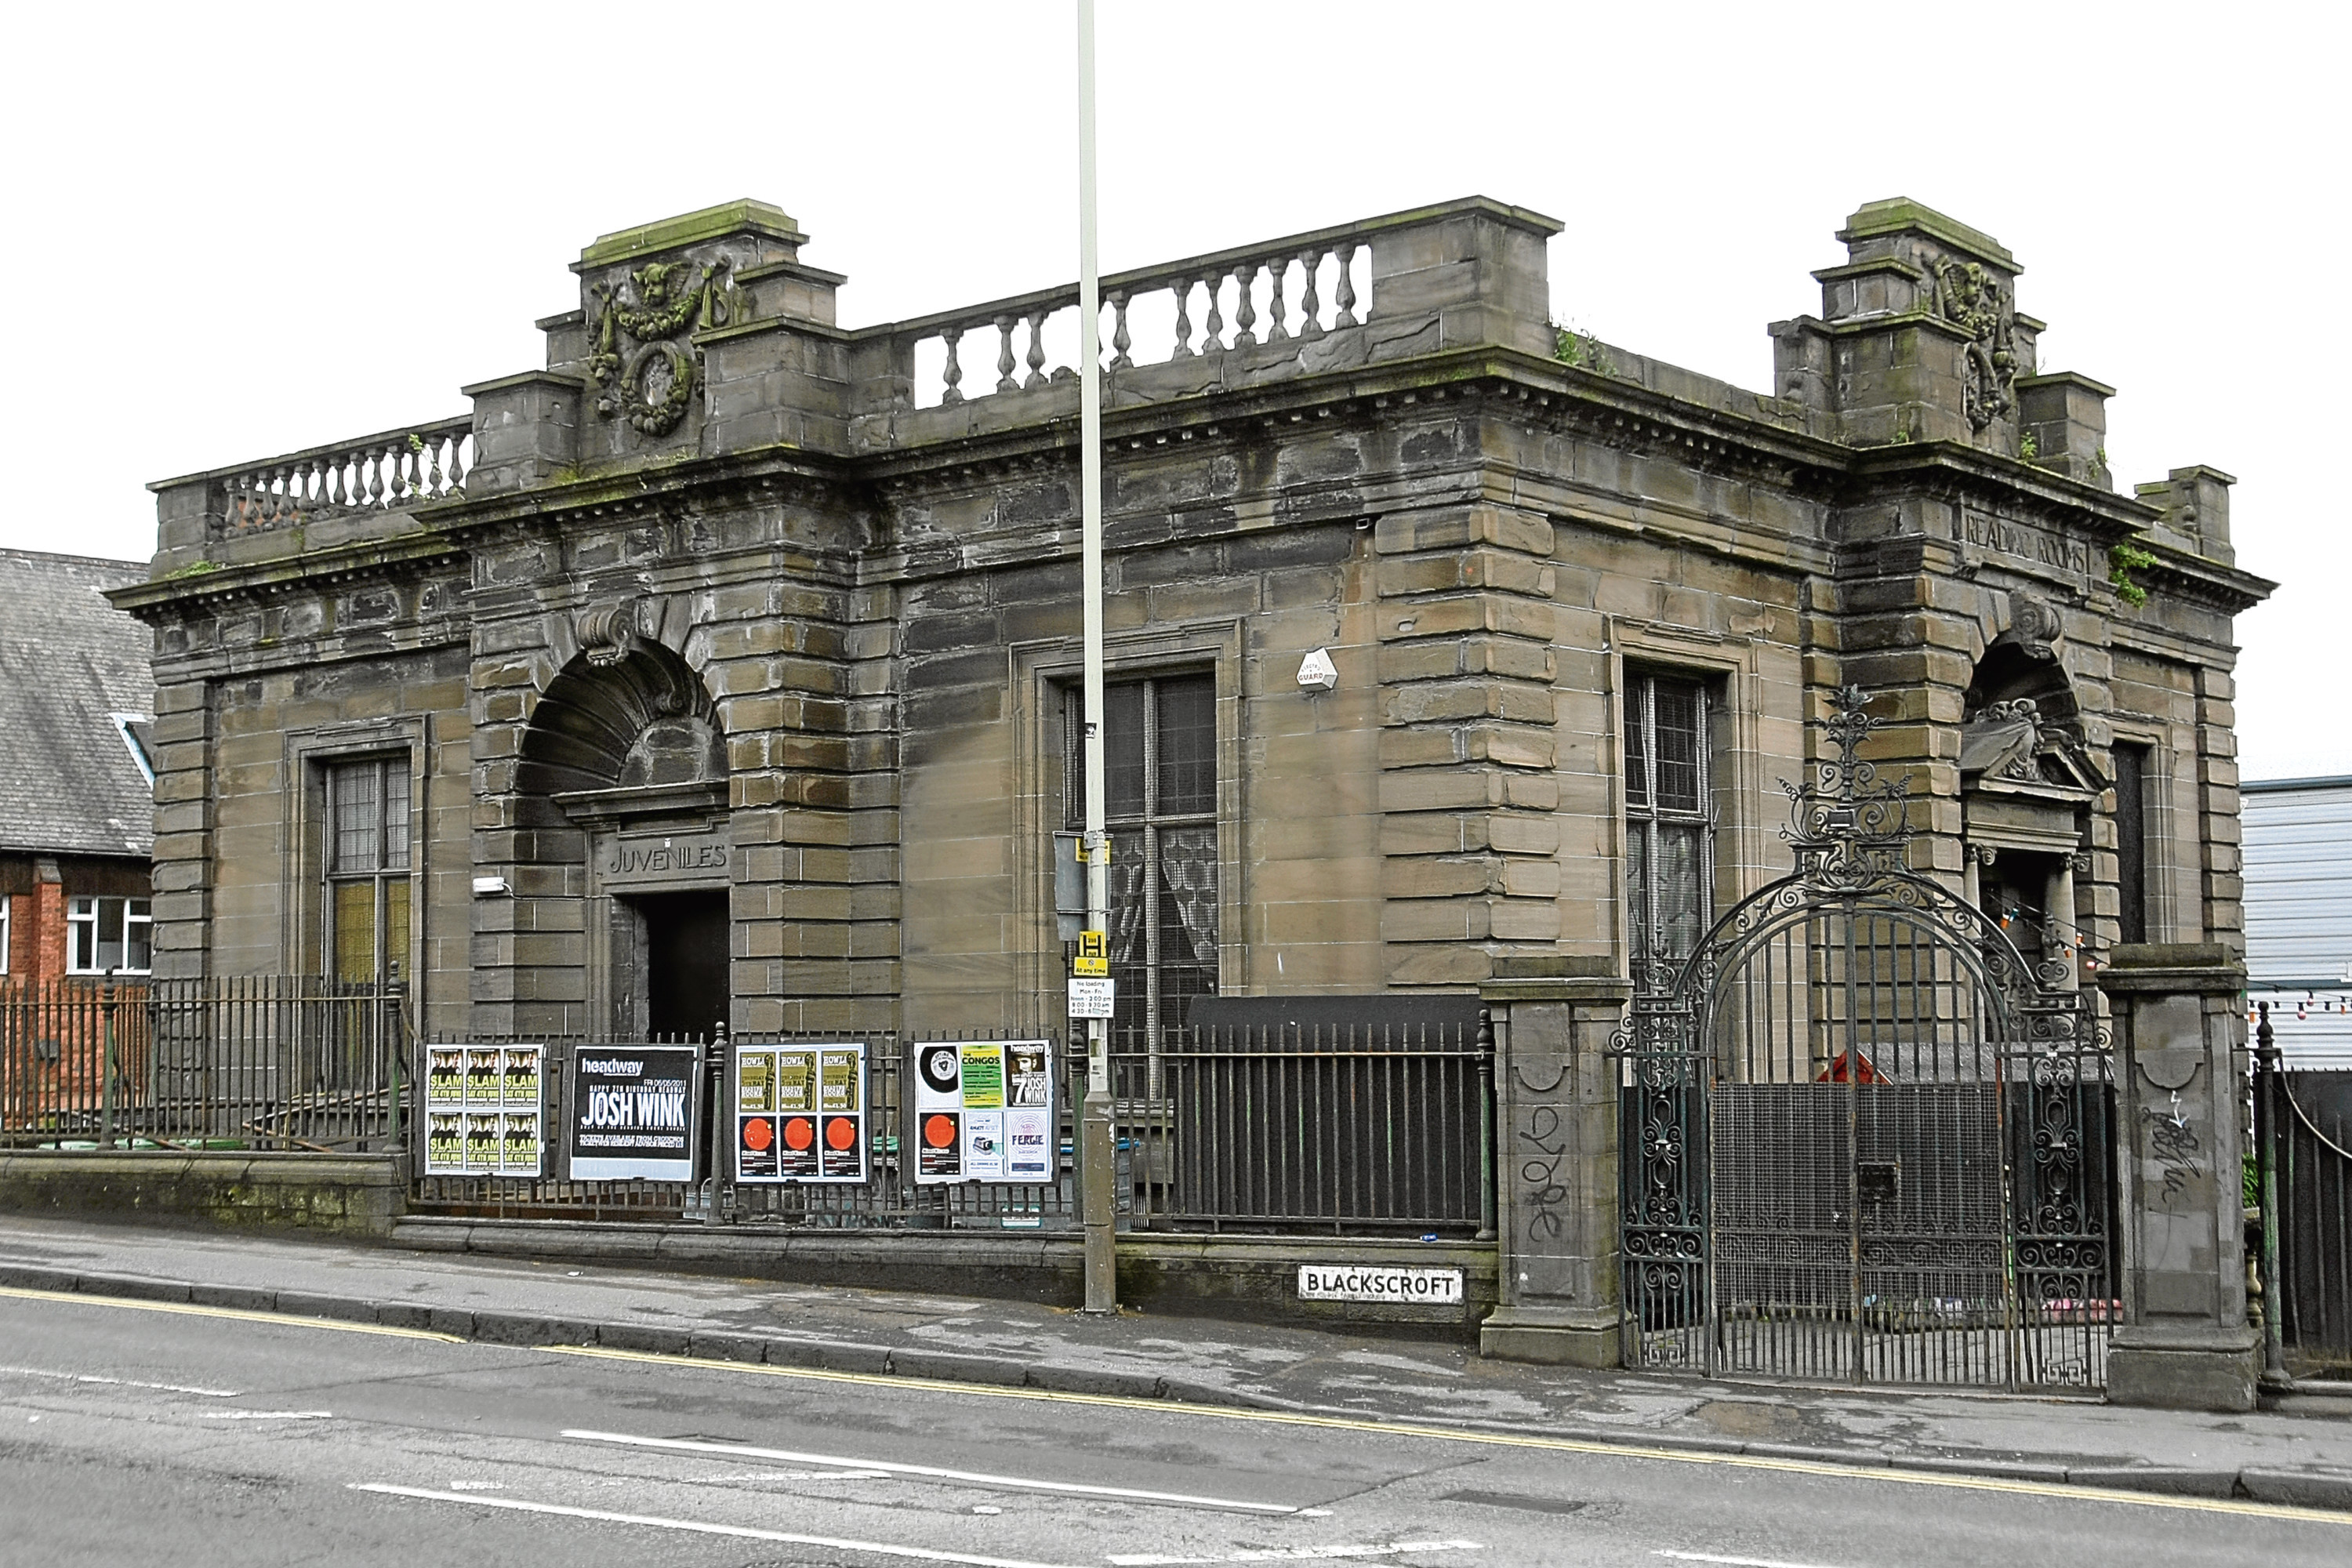 Exterior of the Reading Rooms in Blackscroft, Dundee